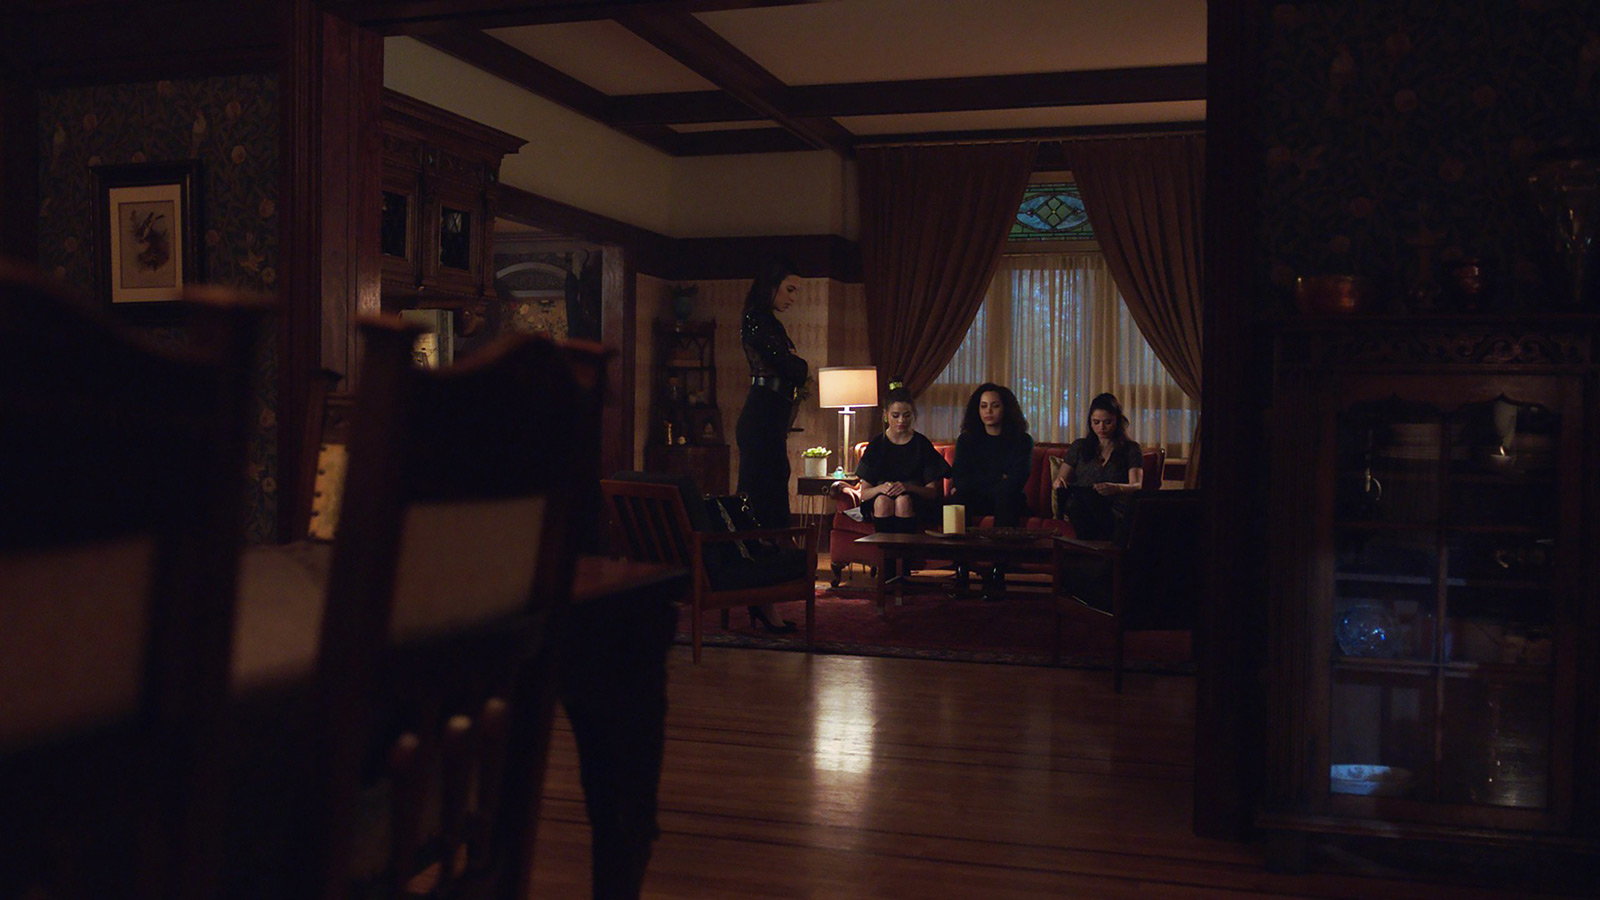 CHARMED: S1 - VERA MANOR - LIVING & DINING ROOM - SCREEN STILL